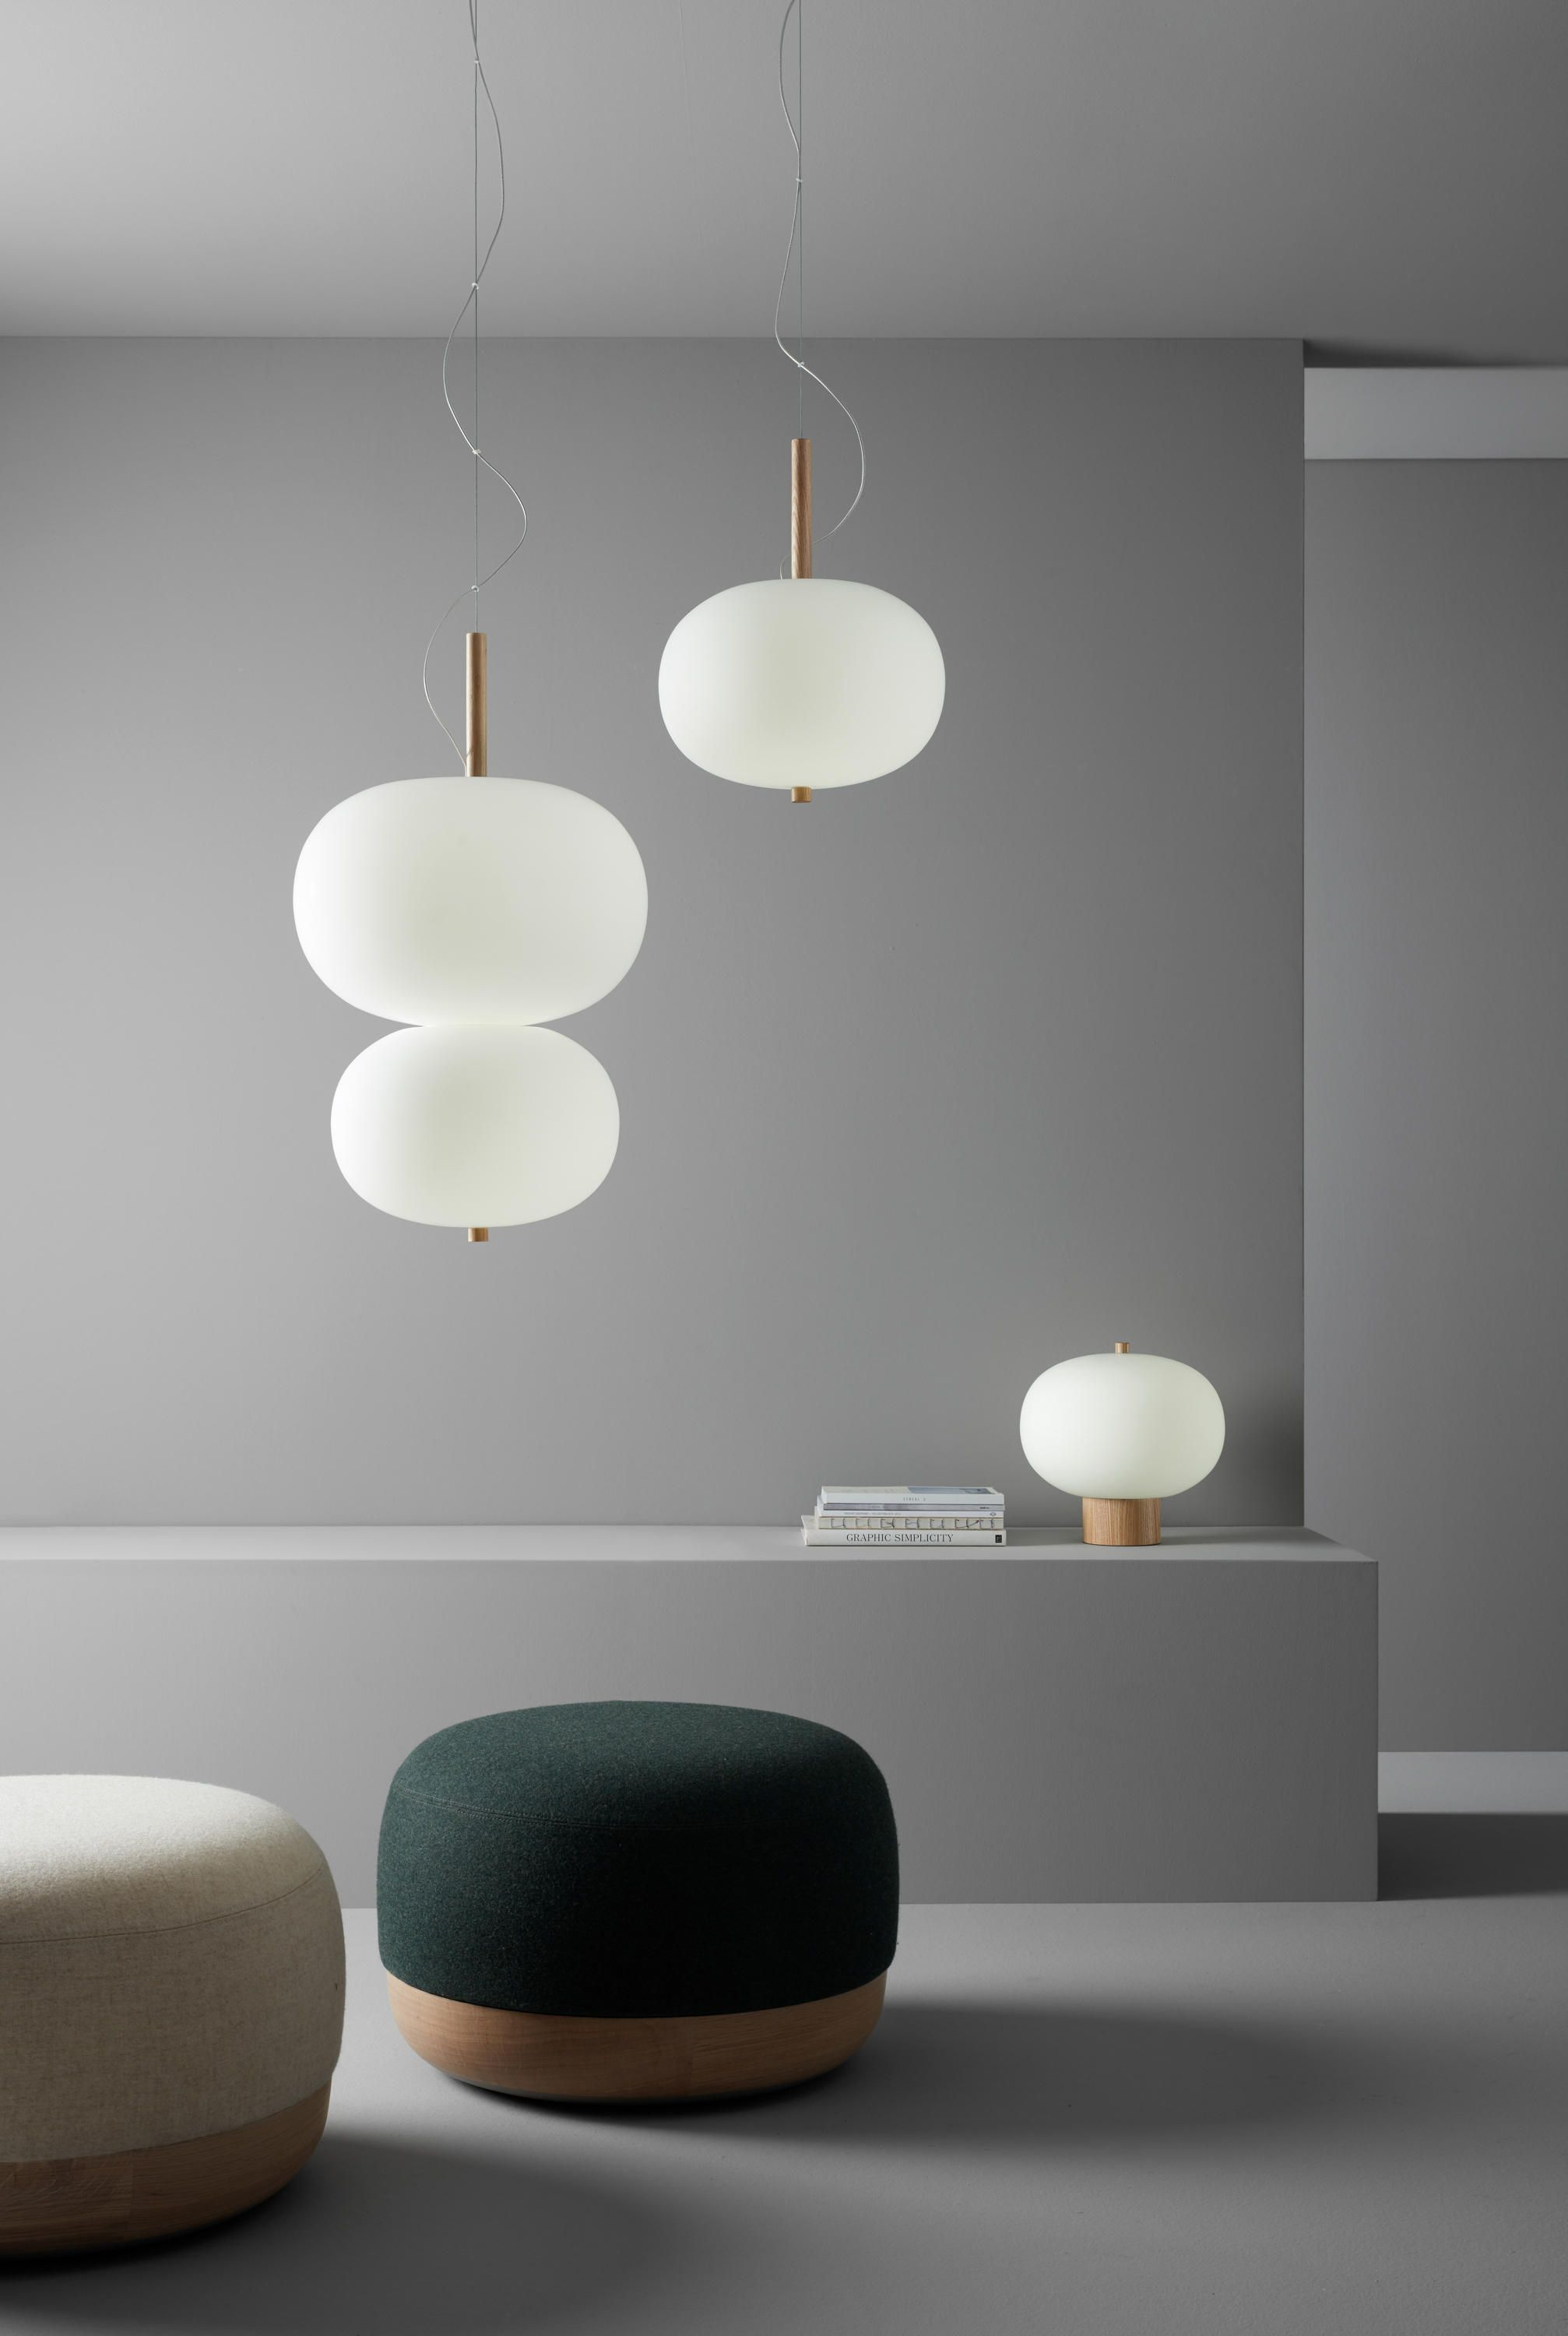 Ilargi double designer general lighting from grok